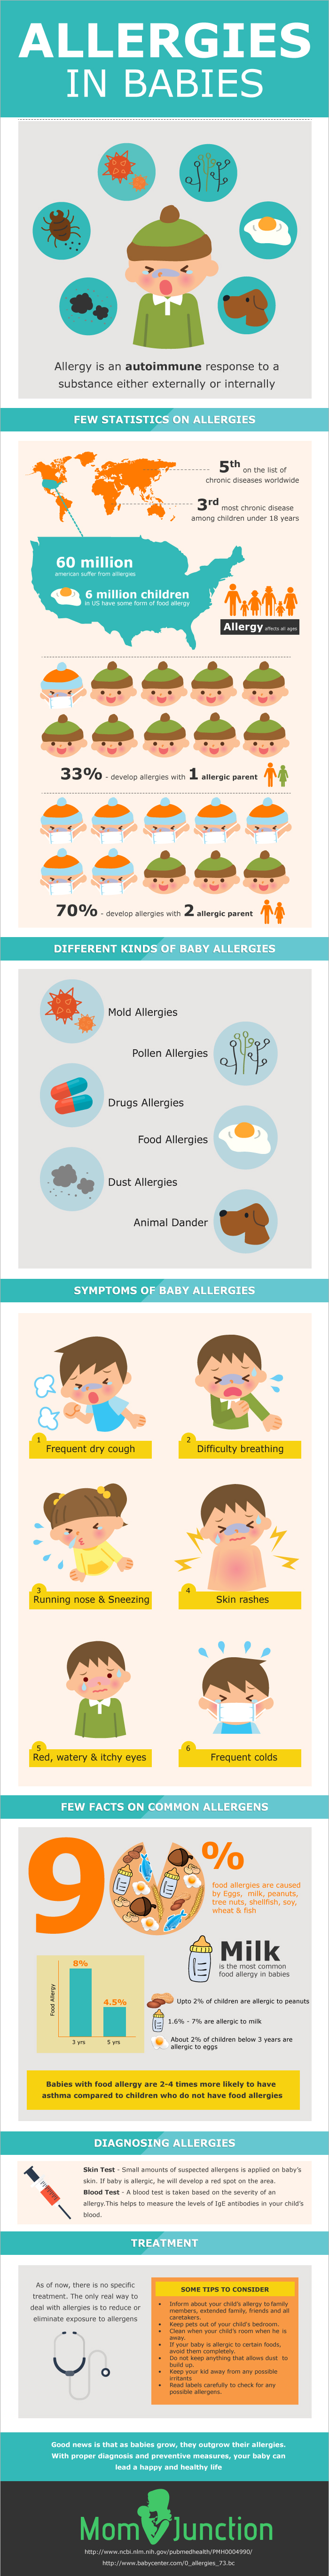 How to Treat Allergies in Babies